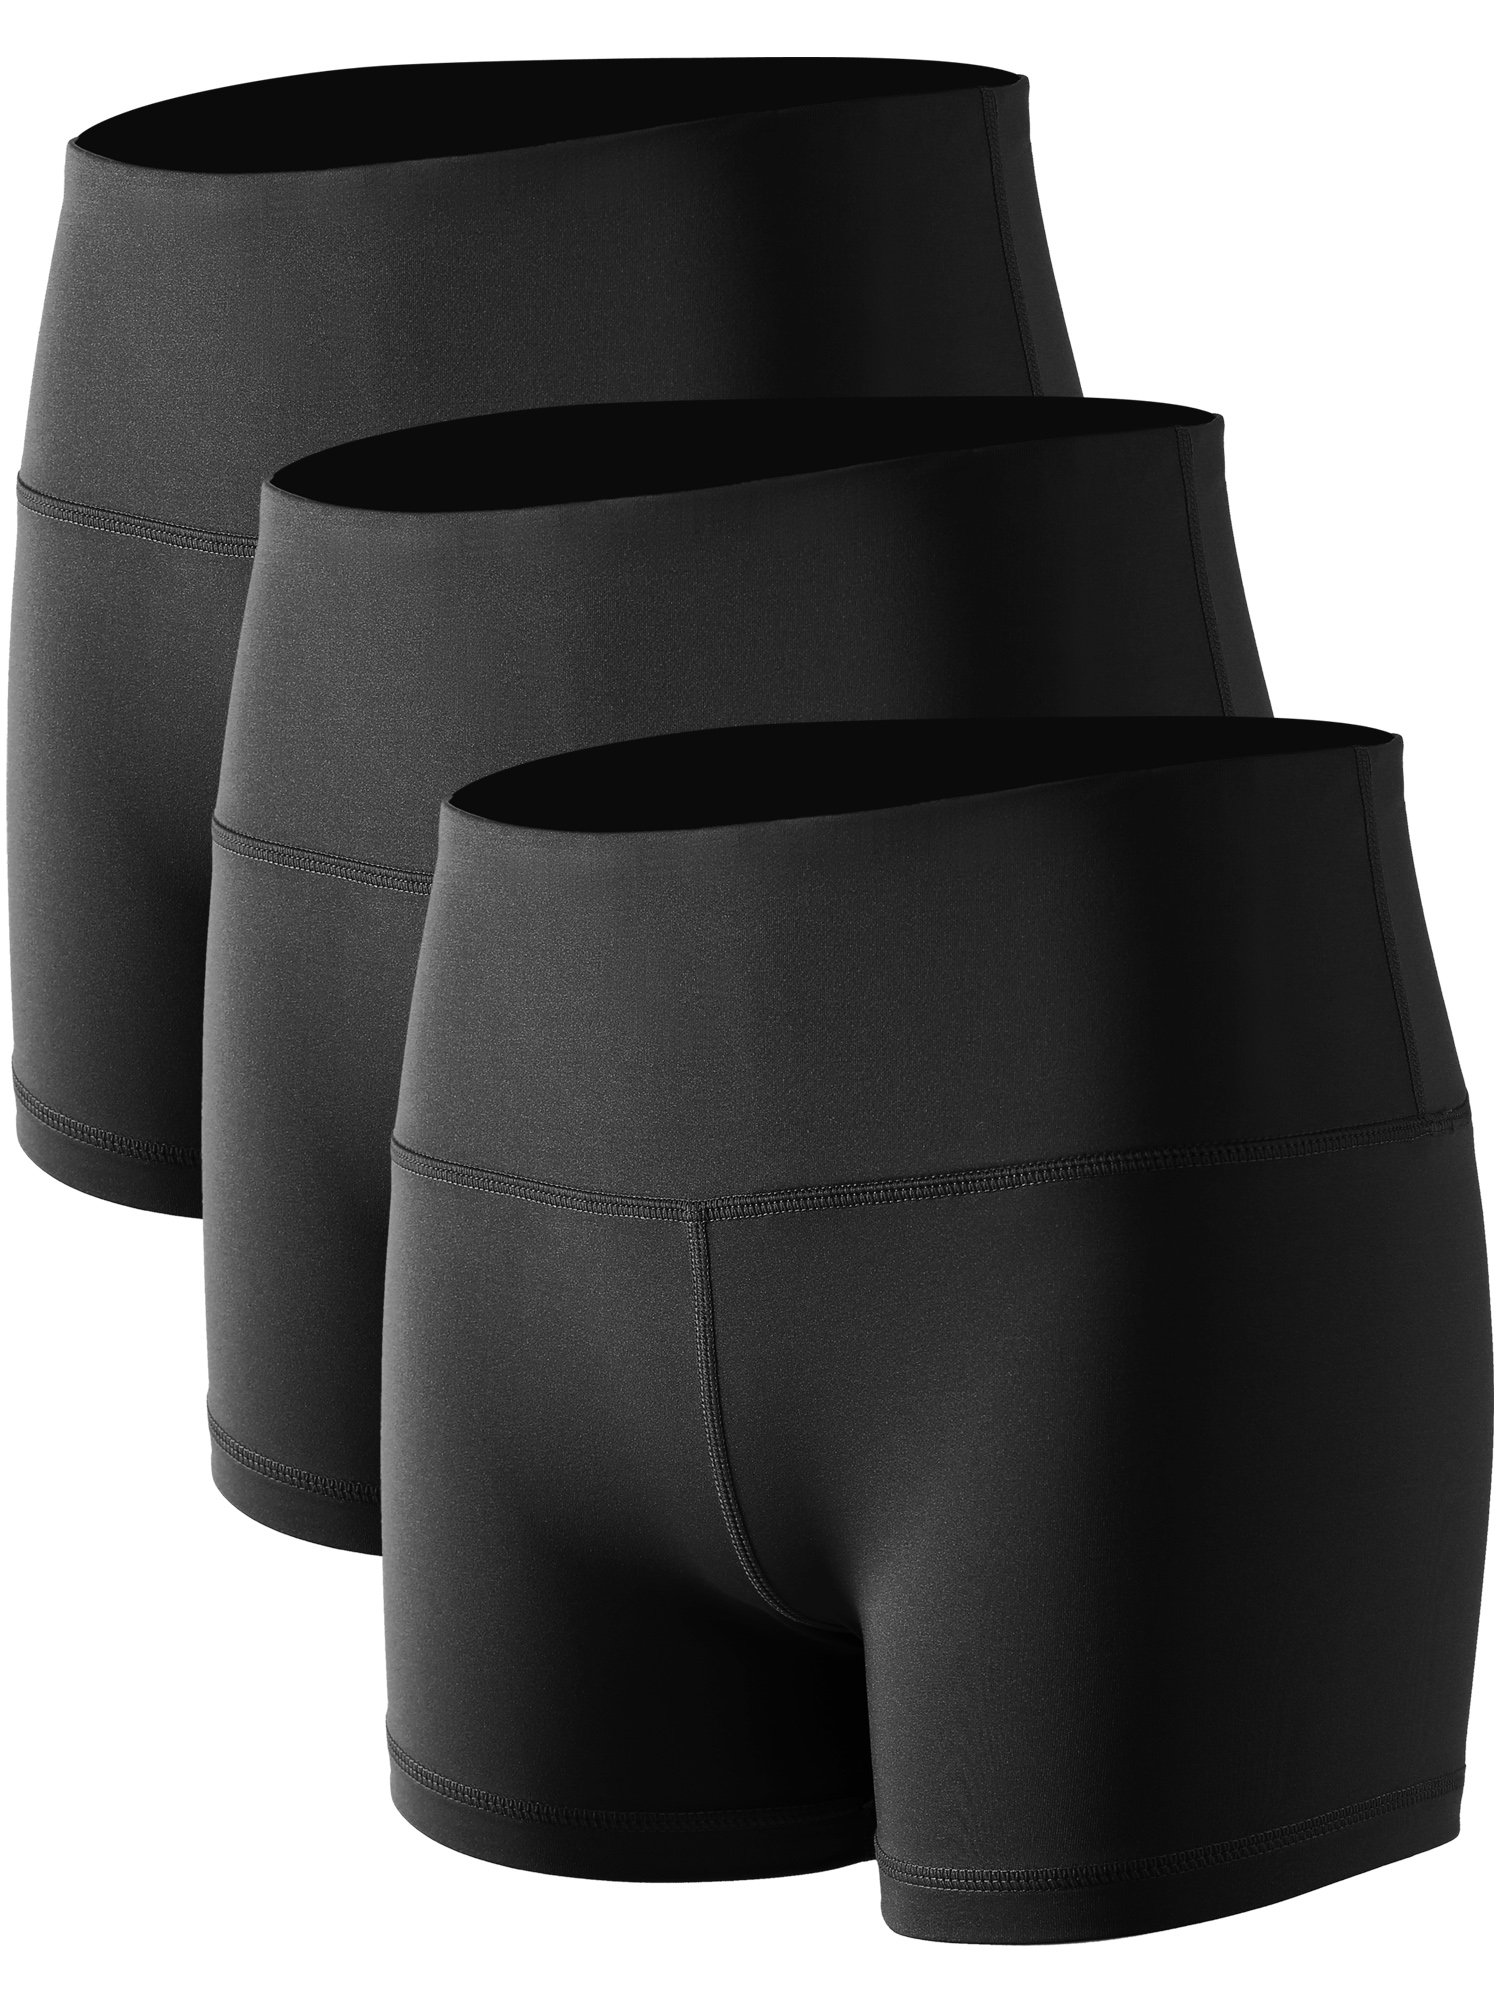 Cadmus Women's Stretch Fitness Running Shorts with Pocket,3 Pack,05,Black,Small by Cadmus